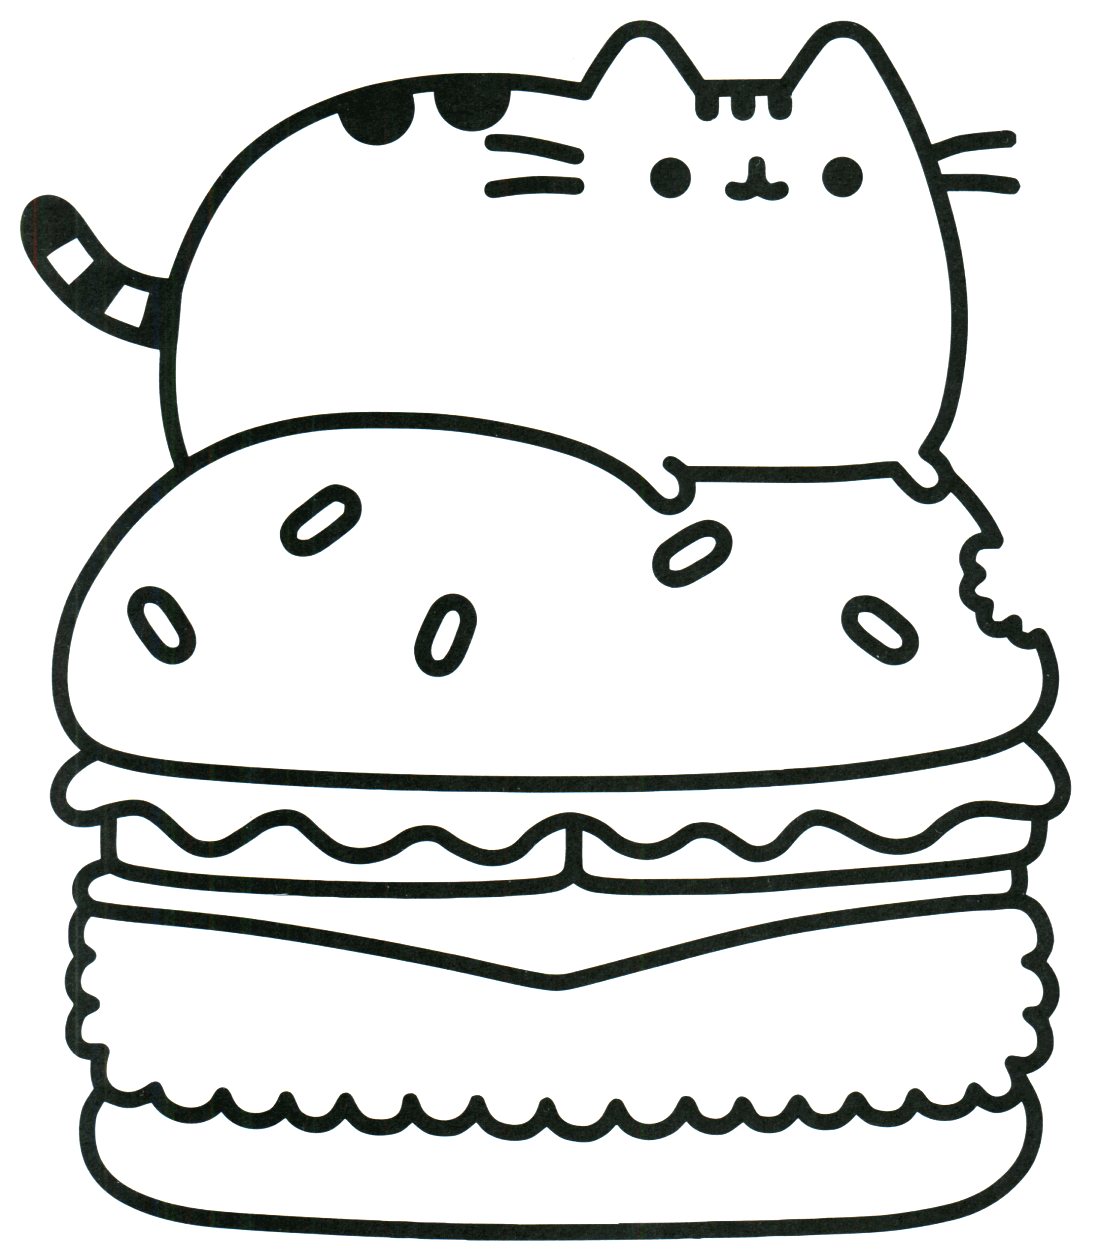 - Pusheen Cat Coloring Pages Cat Coloring Book, Pusheen Coloring